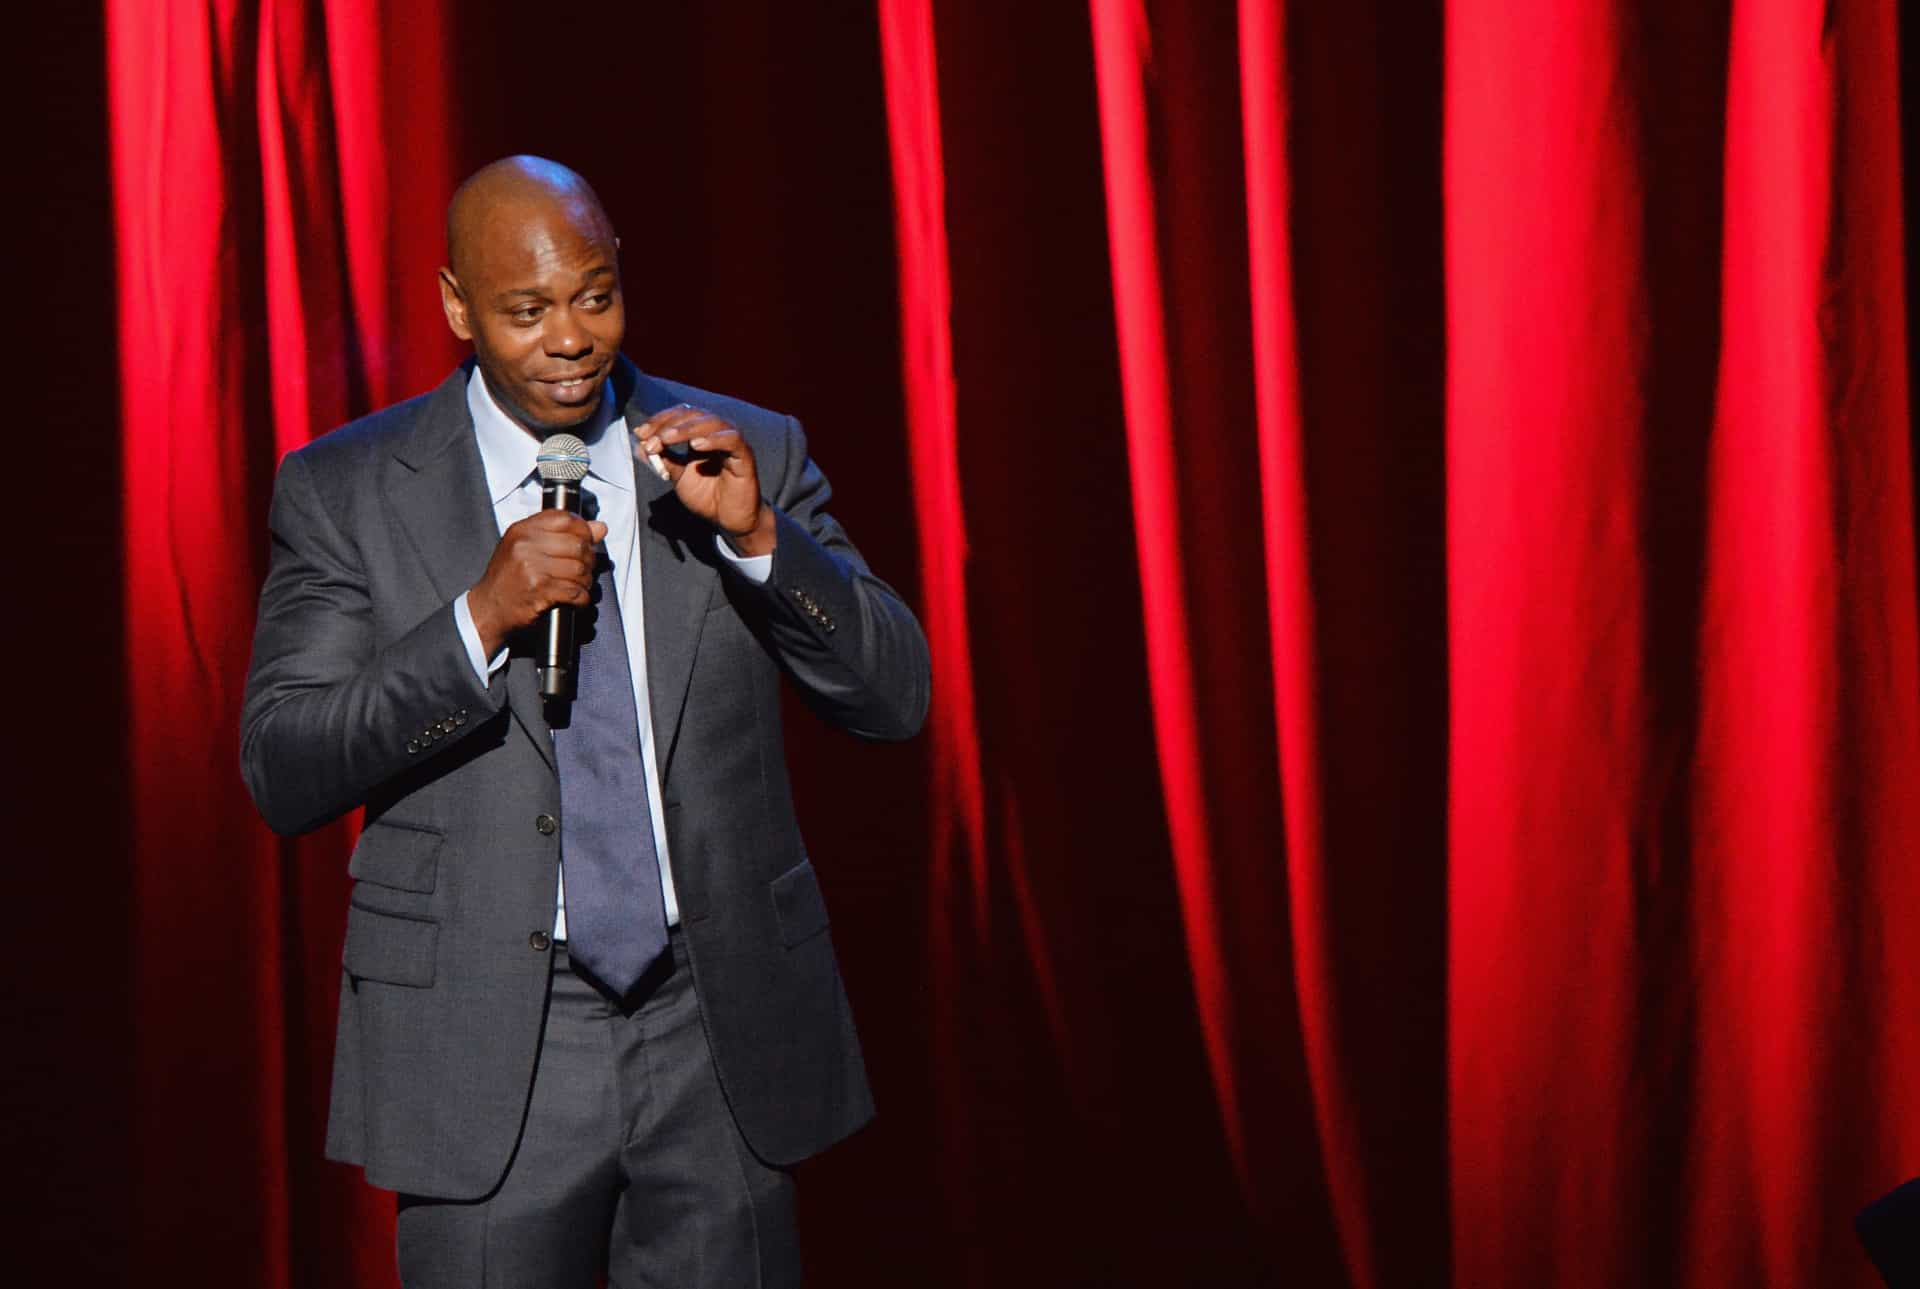 Stand-up comedians and their controversial comebacks